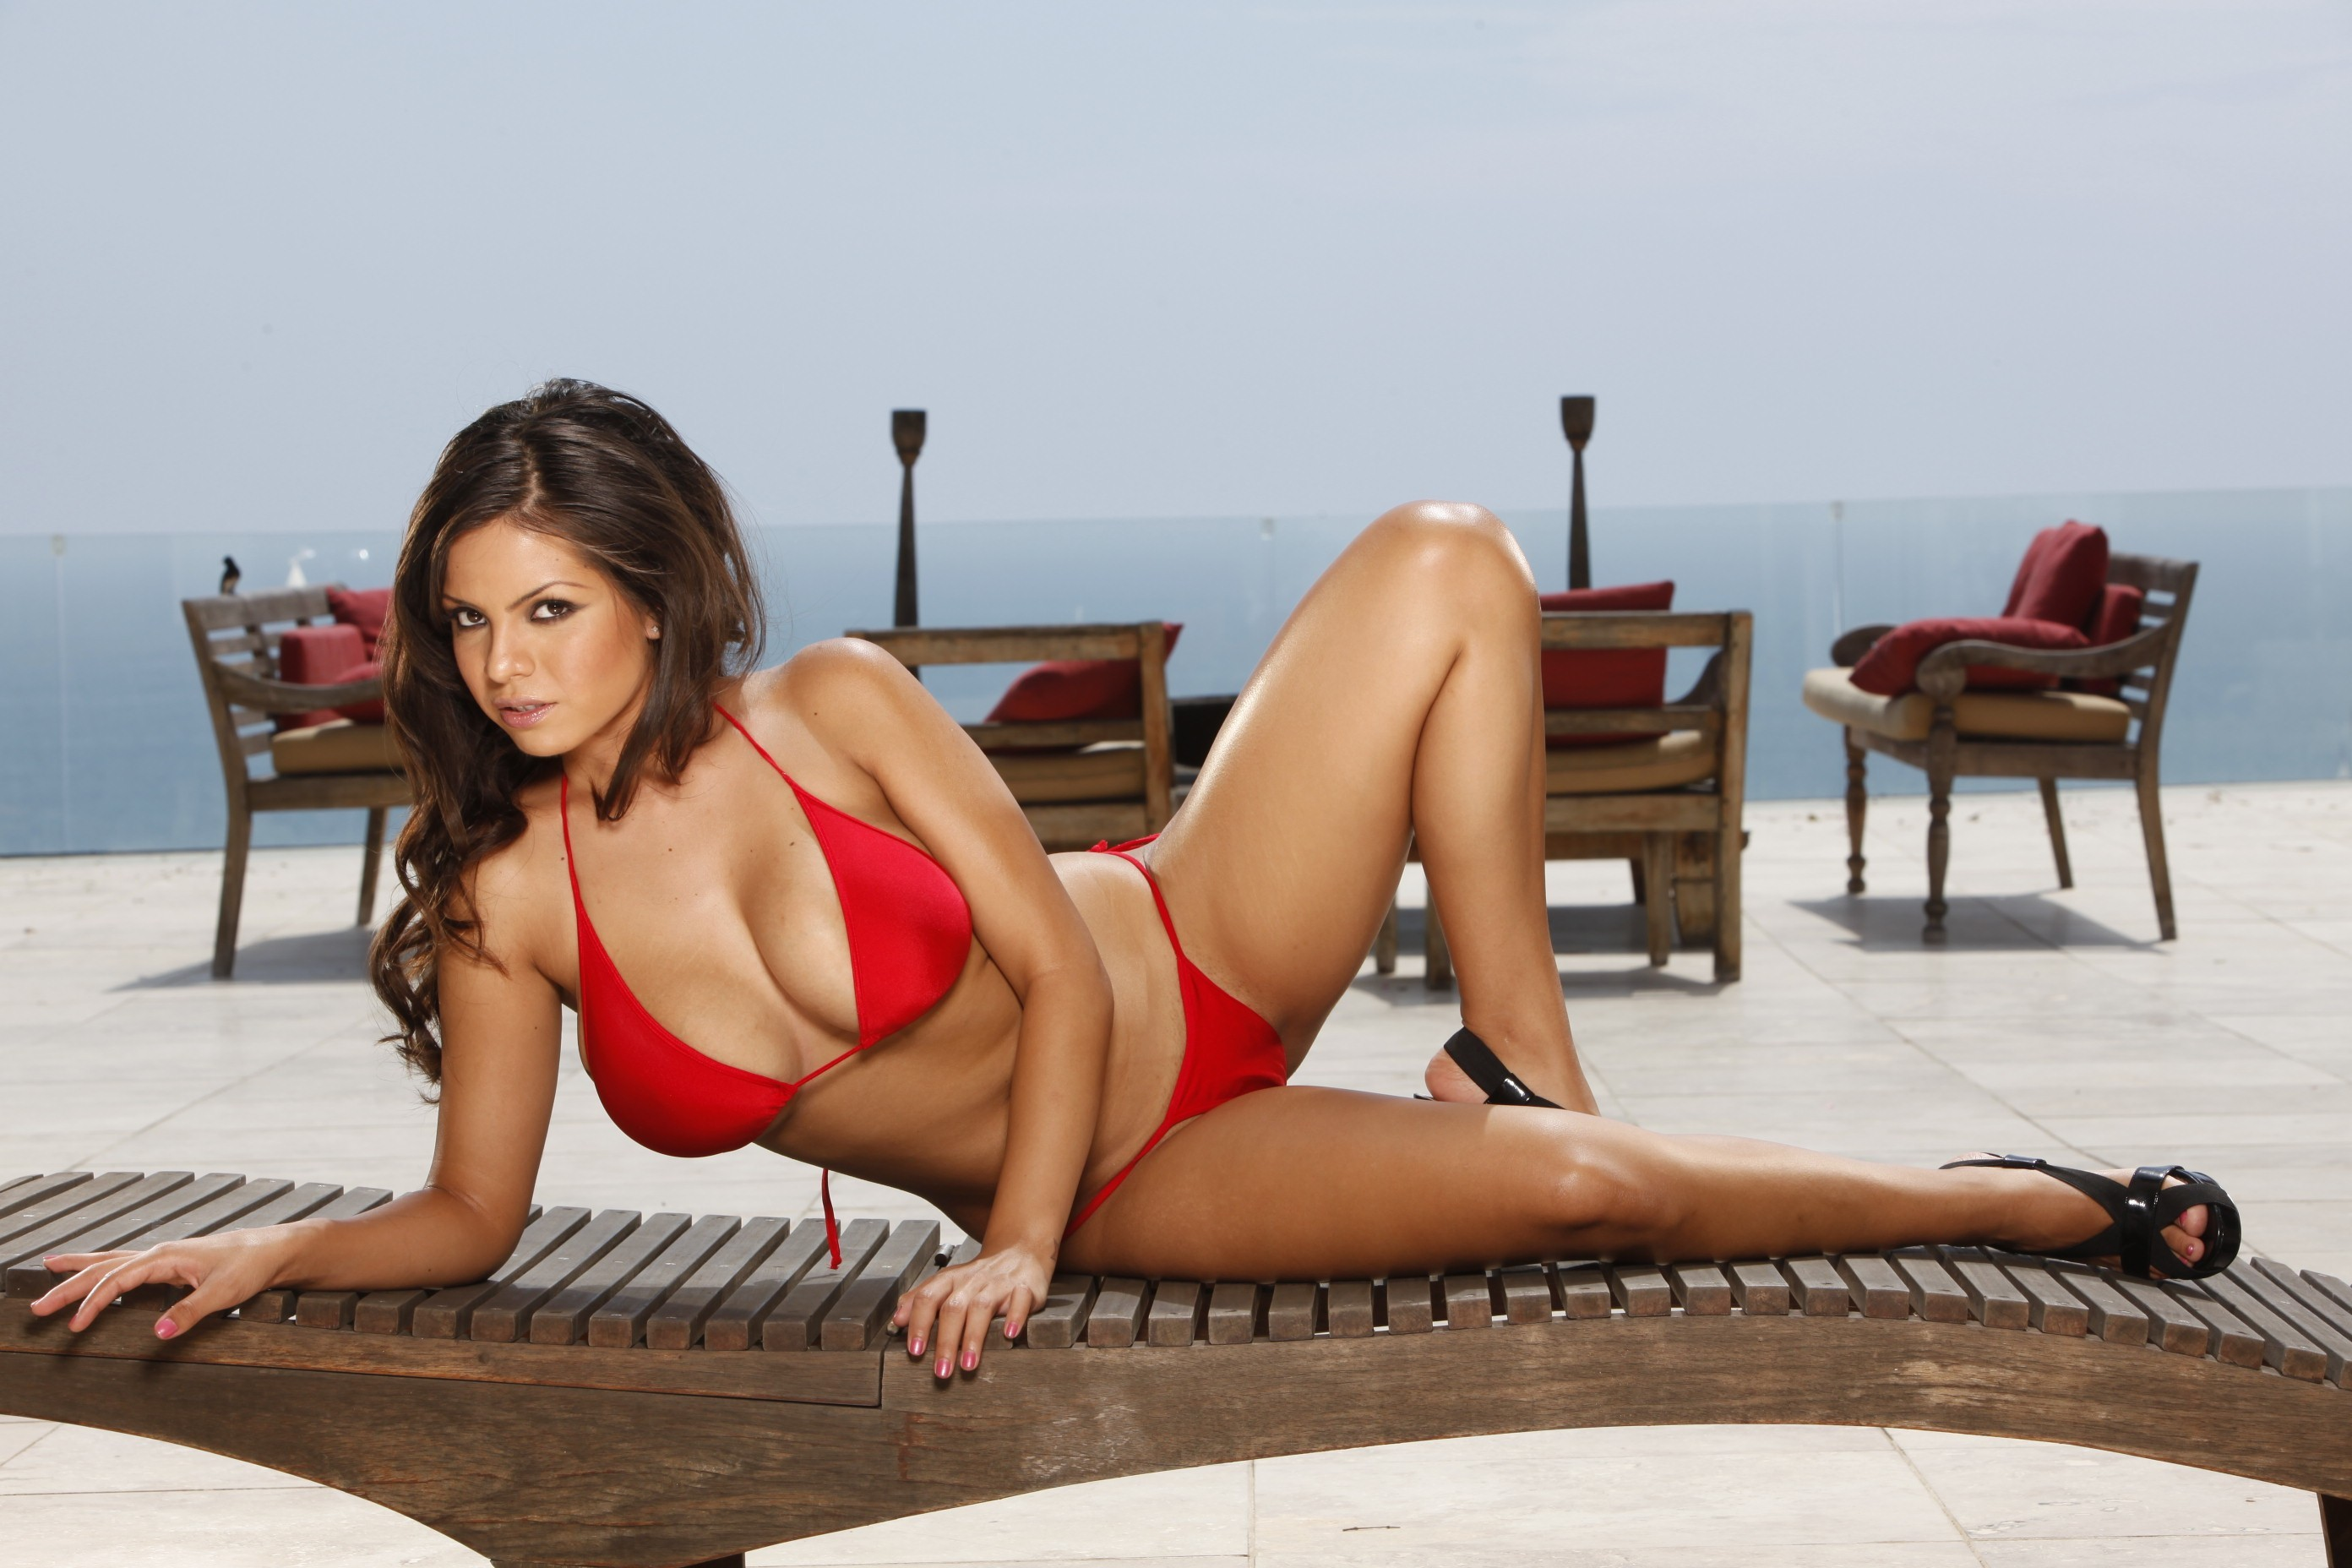 brunettes woman bikini red HD Wallpaper